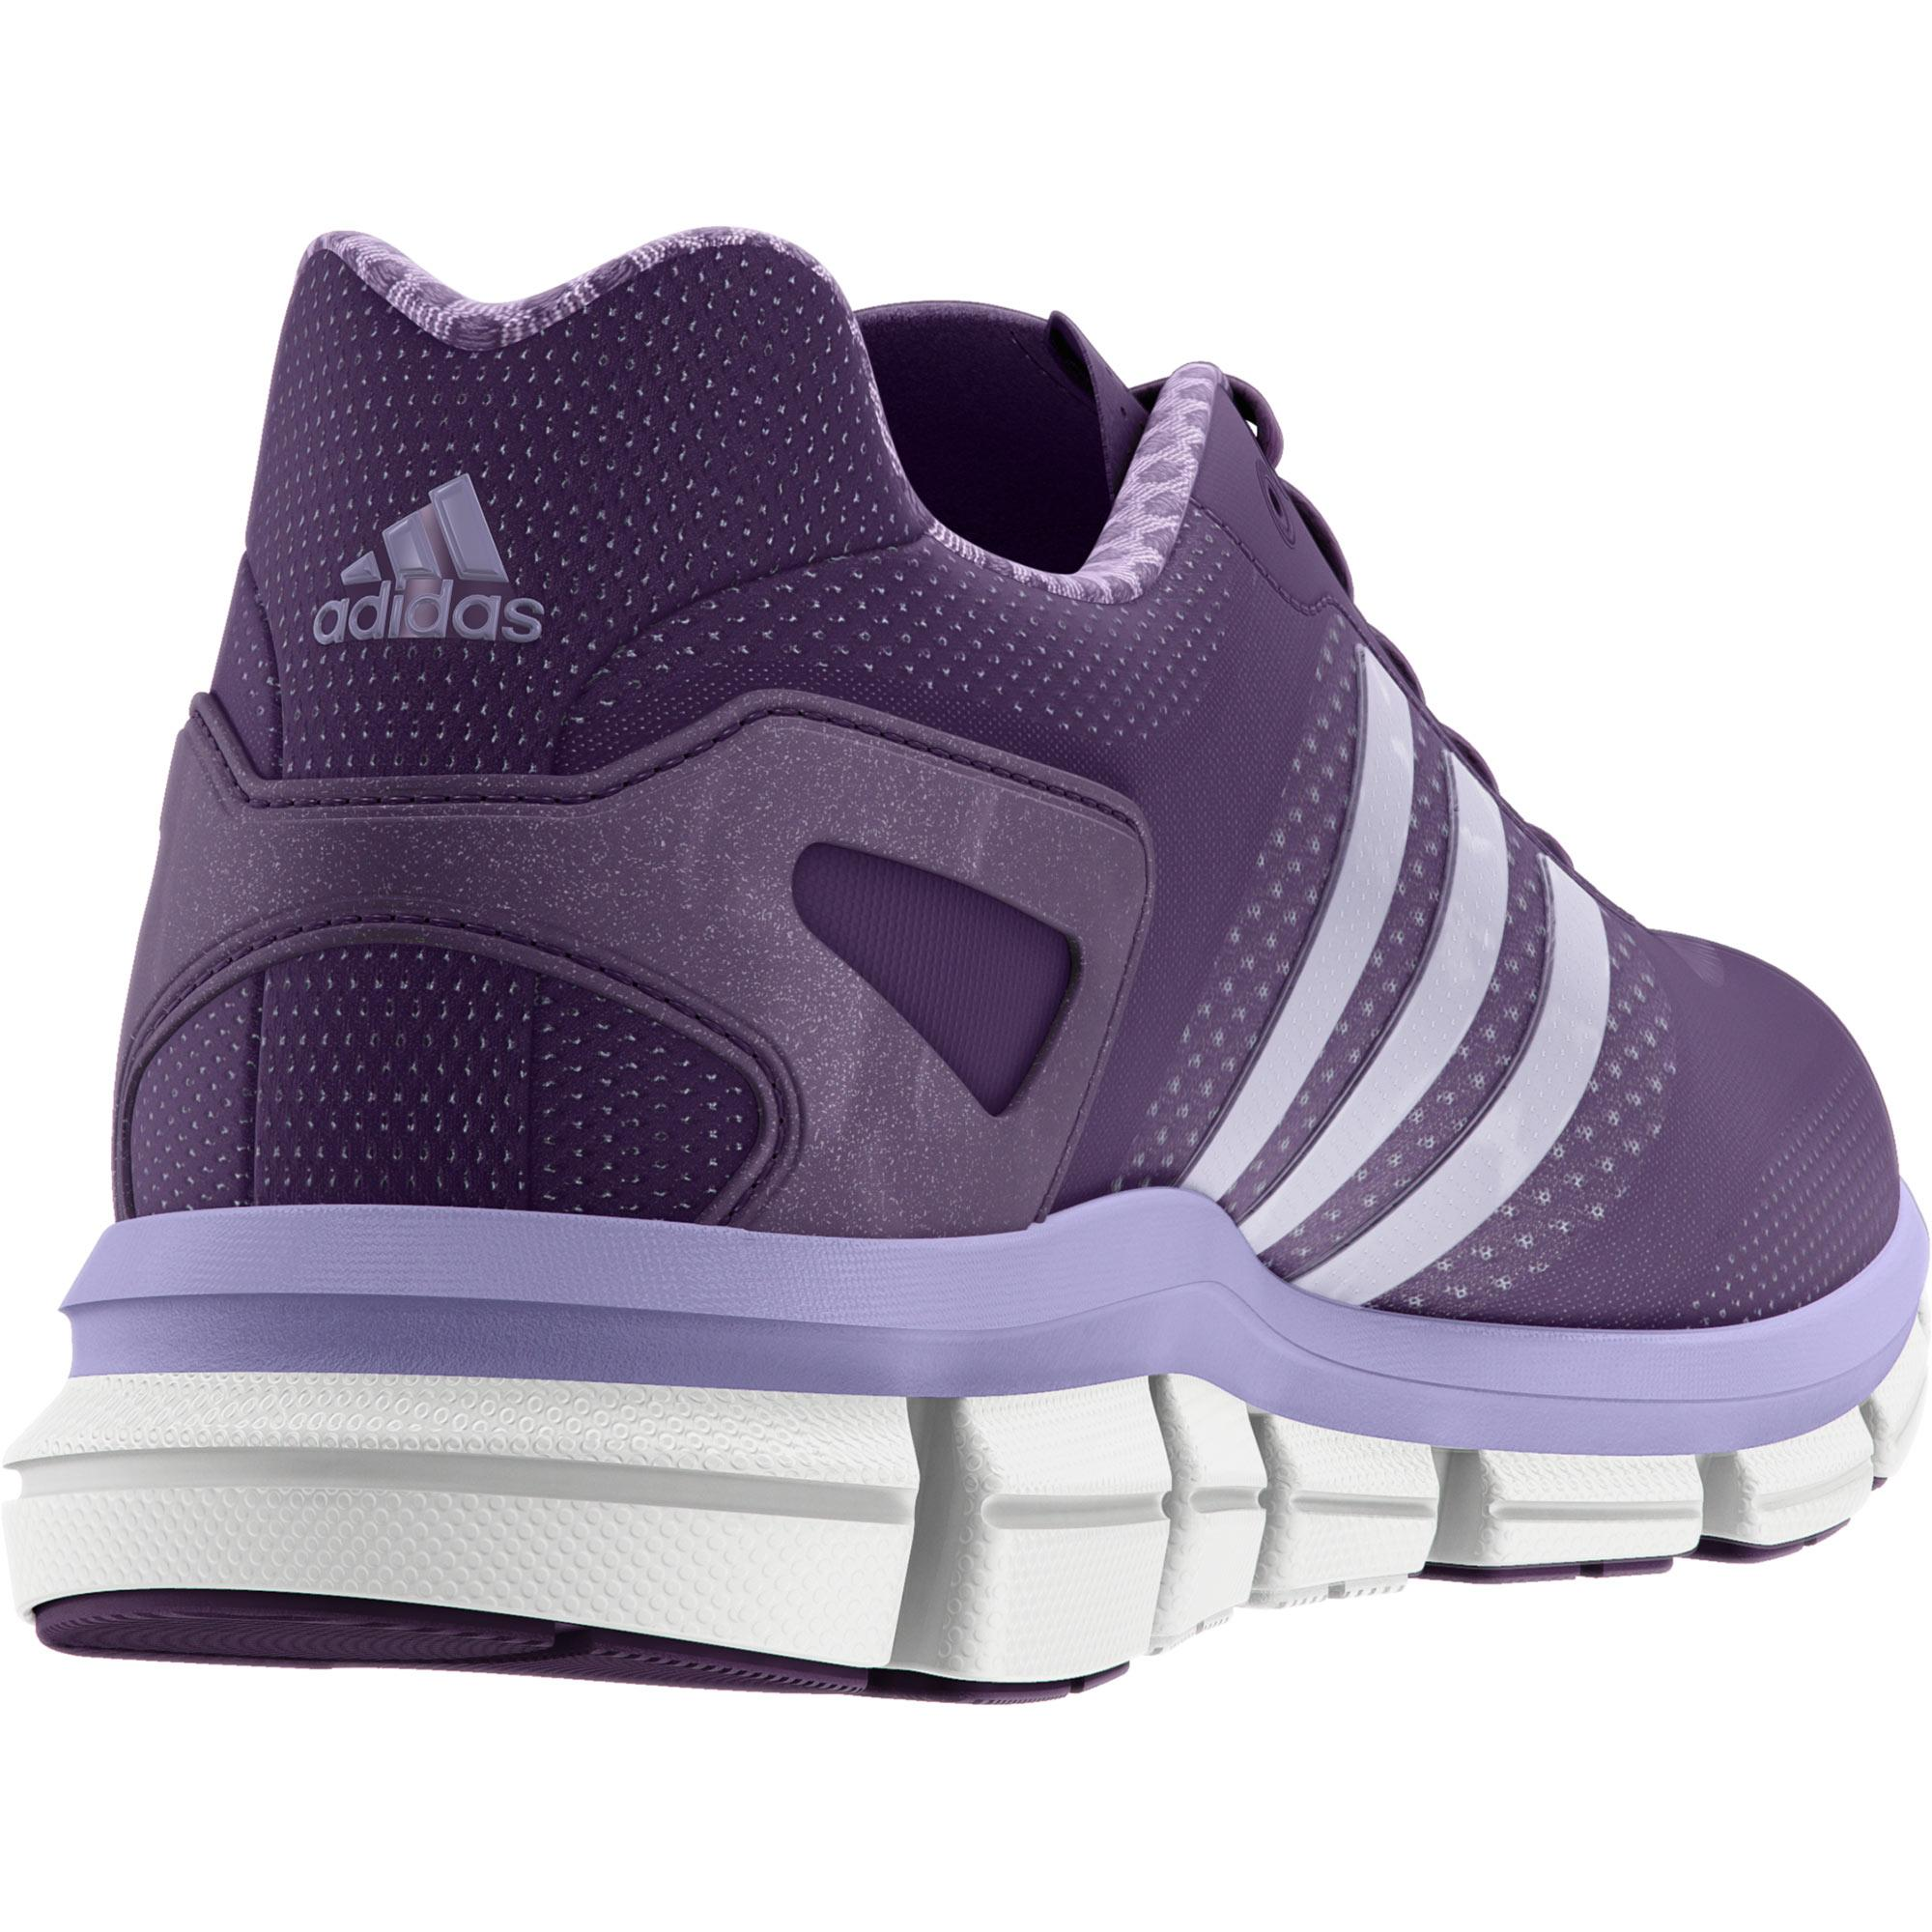 wholesale dealer 7687d 4838d Adidas Womens ClimaCool Ride Running Shoes - Tribe Purple